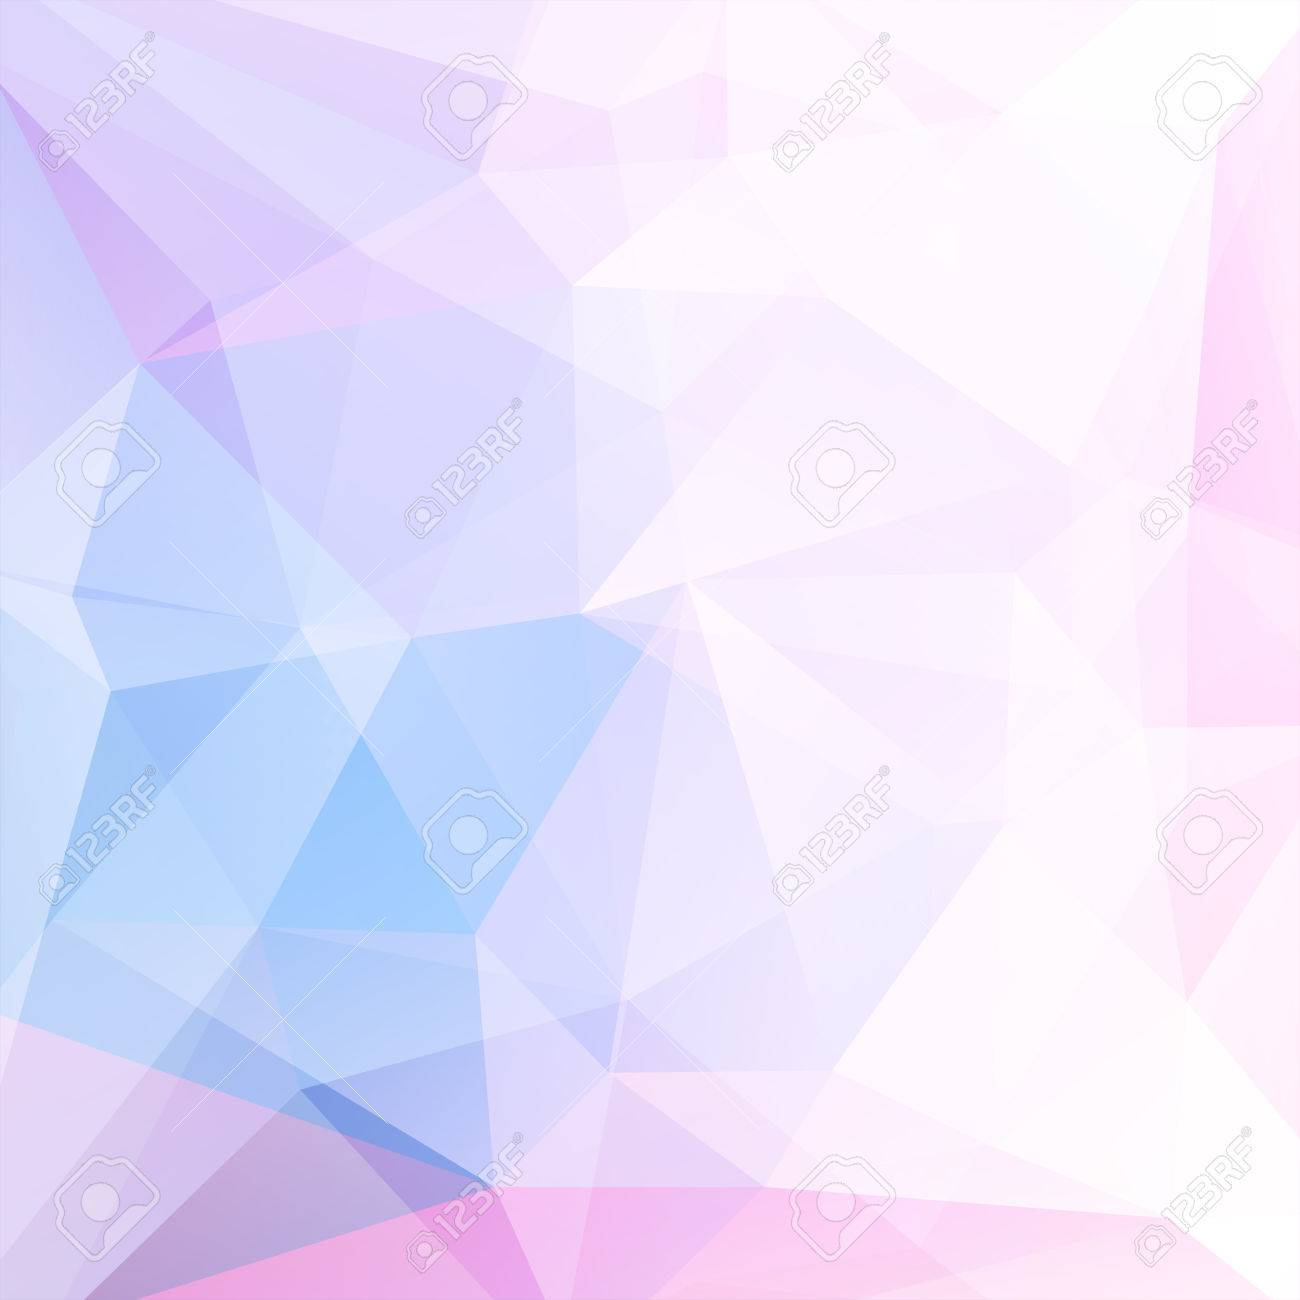 abstract background consisting of white blue pink triangles